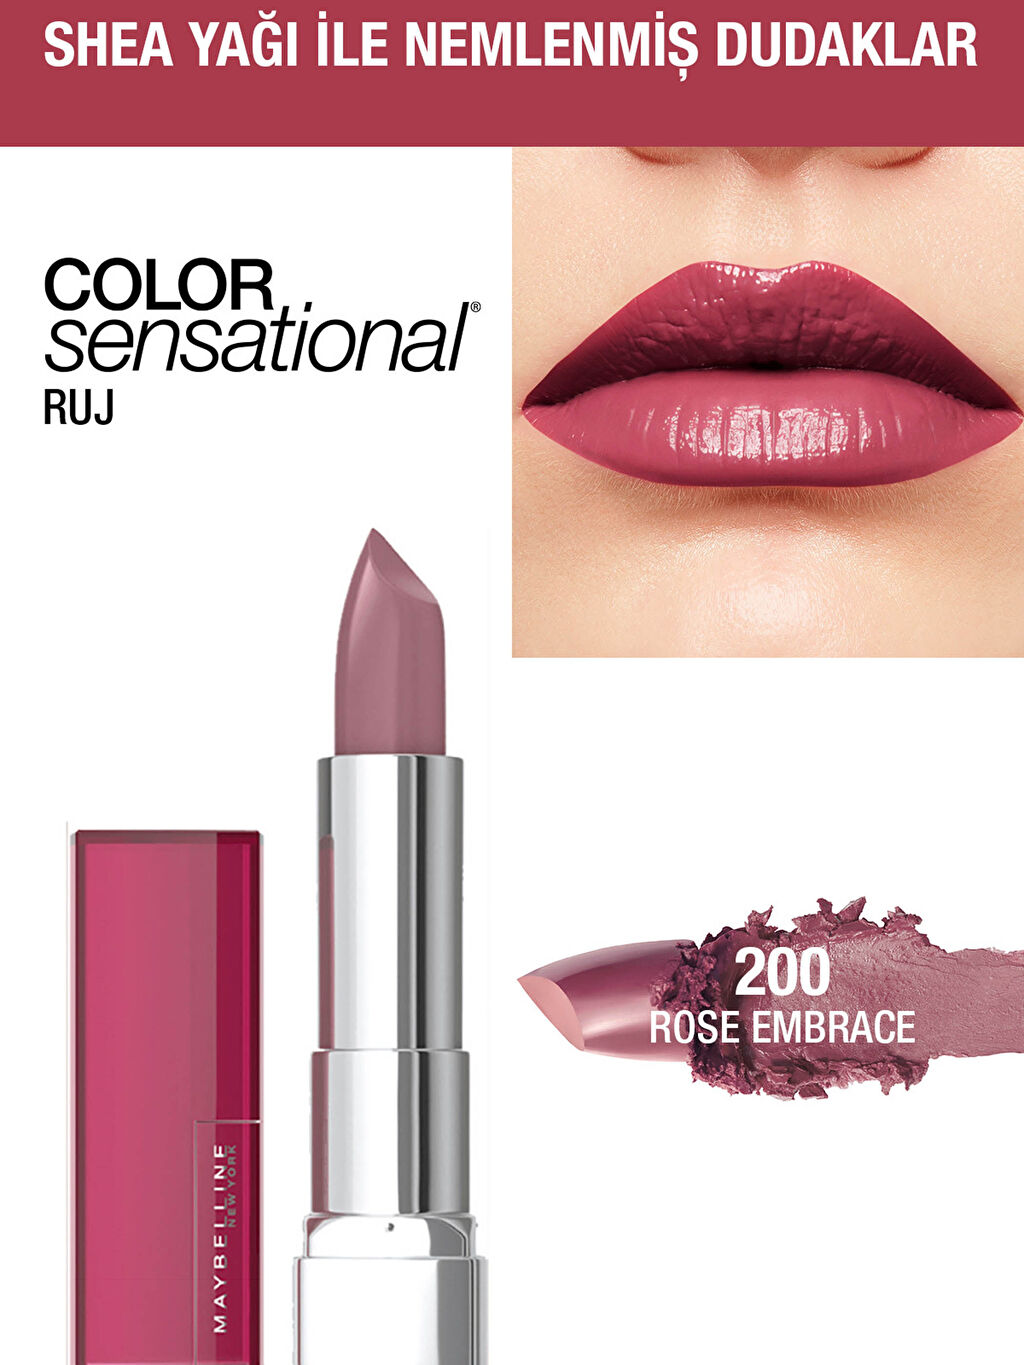 Çok Renkli Maybelline New York Color Sensational Ruj - 200 Rose Embrace - Gül Kurusu 0WGN34Z8 LC Waikiki